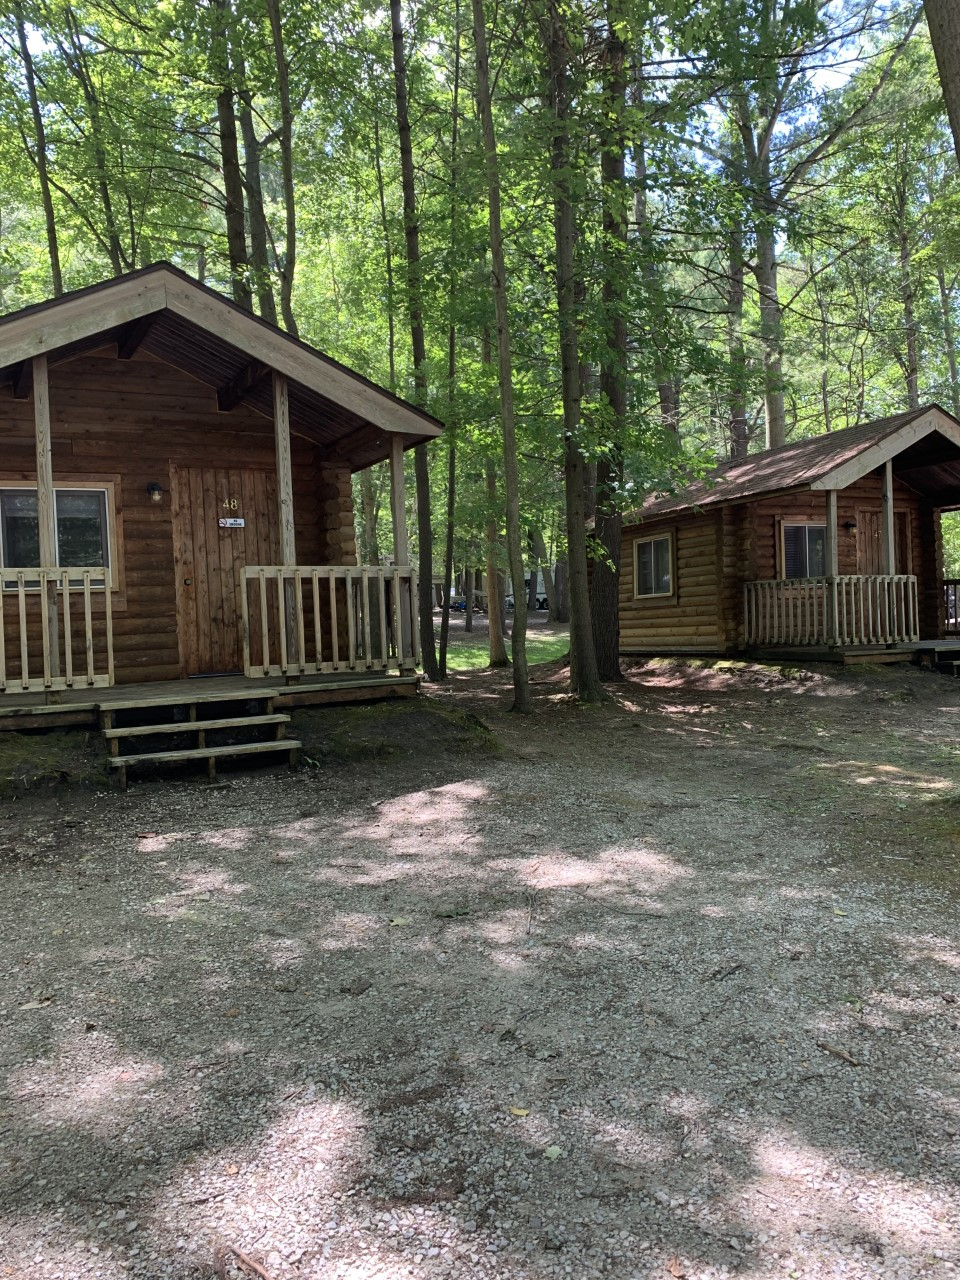 Rustic cabins situated in a wooded area